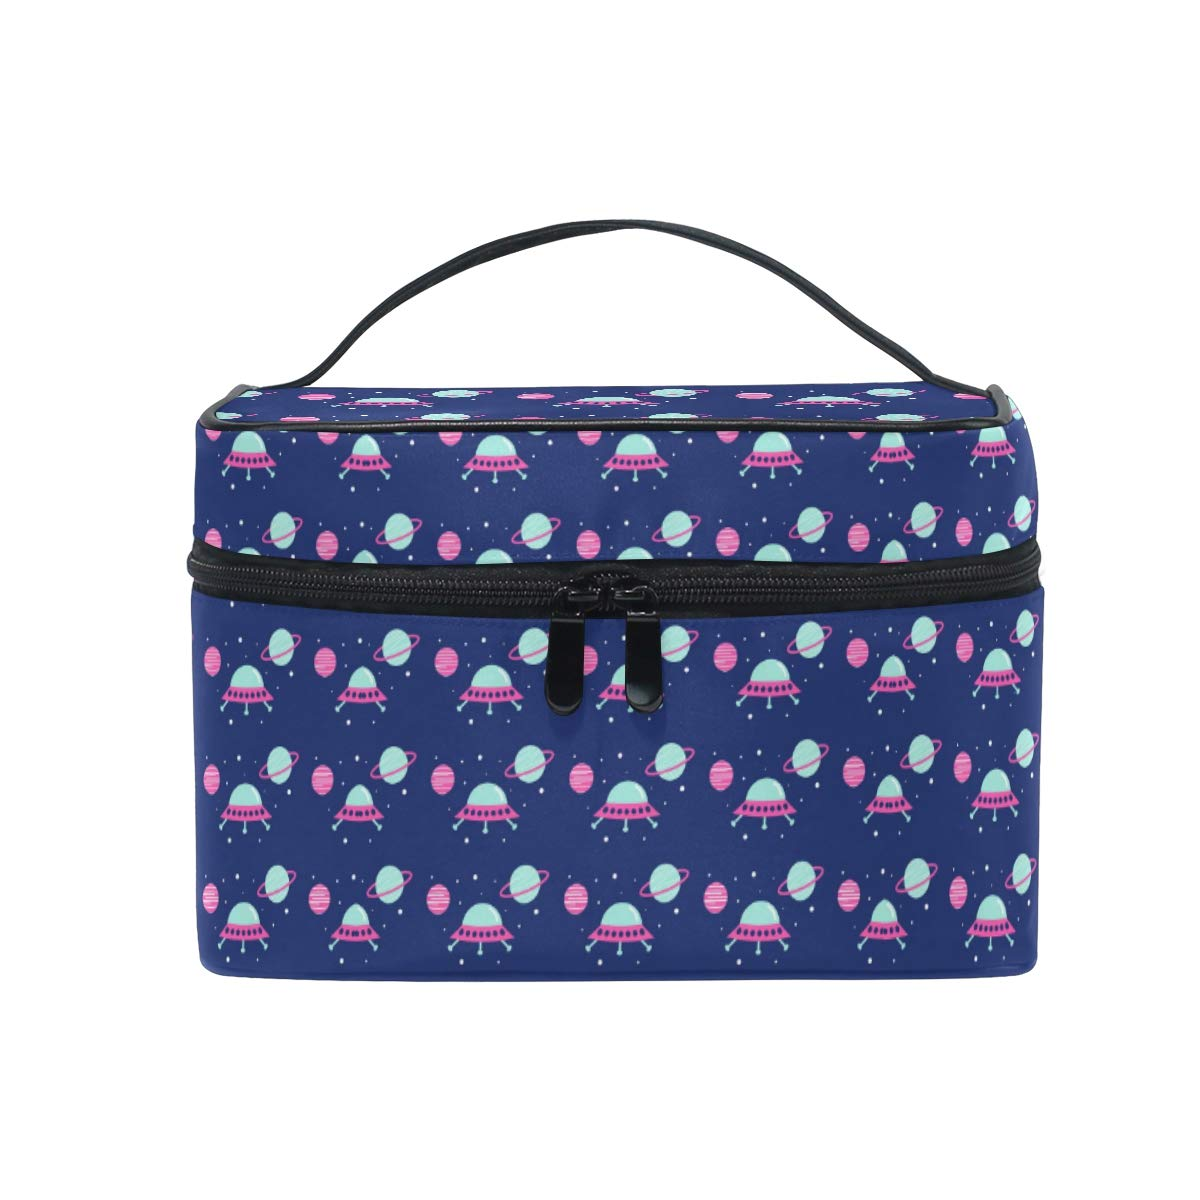 Makeup Bag Purple Flying Saucer Planets Travel Cosmetic Bags Organizer Train Case Toiletry Make Up Pouch